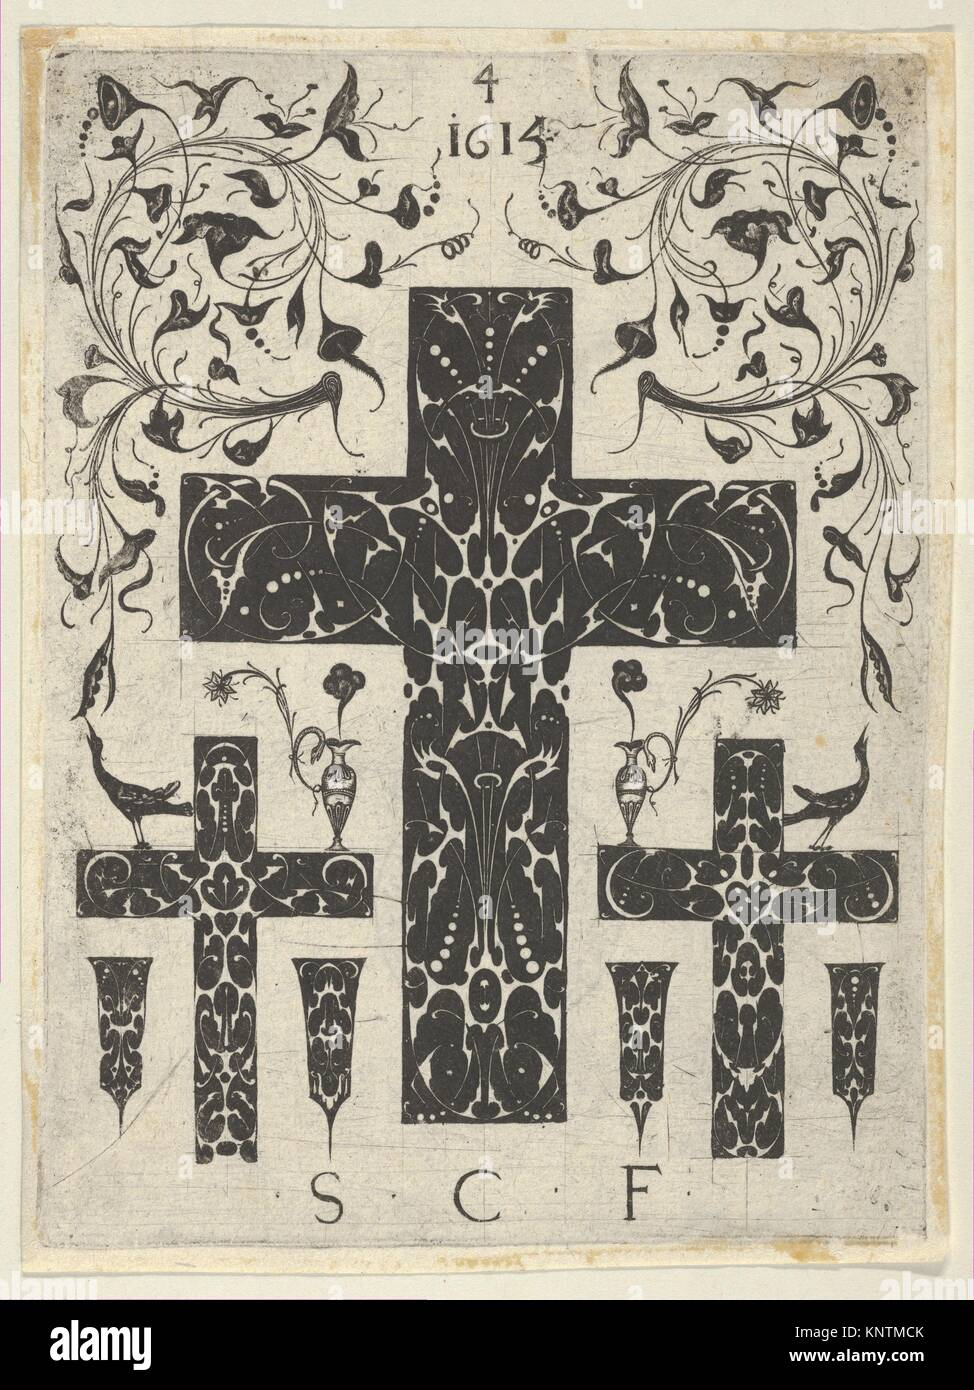 Blackwork Print with Three Crosses and Foliate Scrolls, from a Series of Blackwork Prints for Goldsmiths' Work. - Stock Image